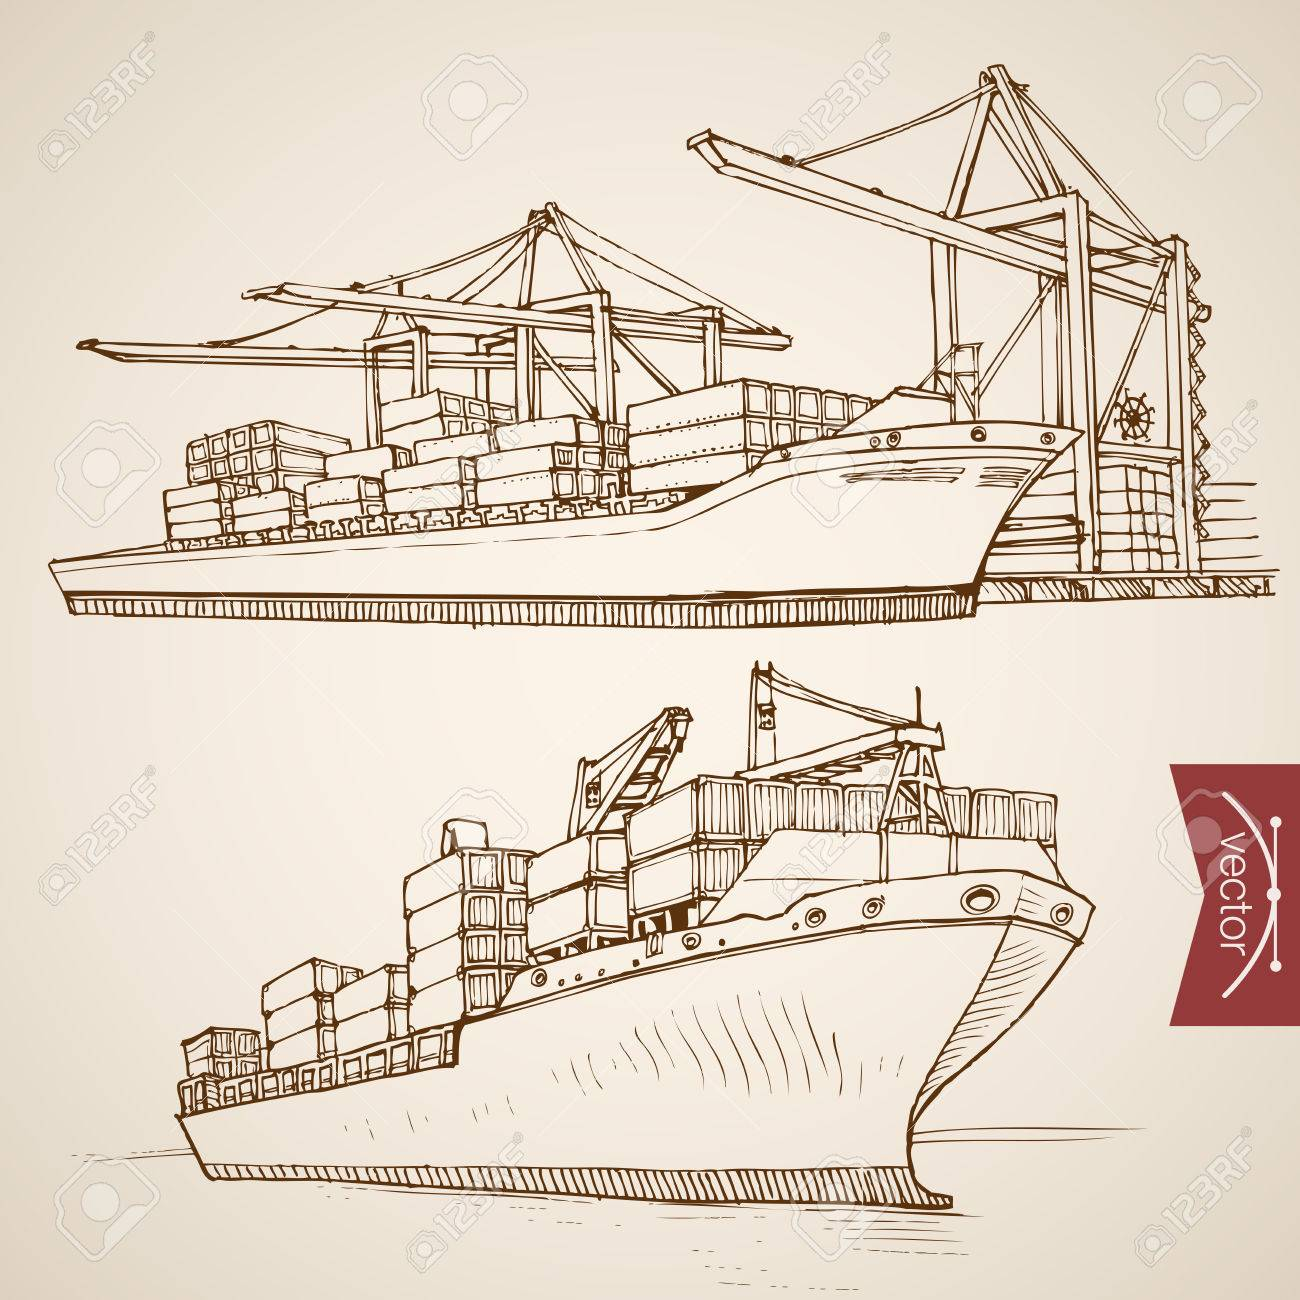 Engraving vintage hand drawn vector ship deliver and unload cargo